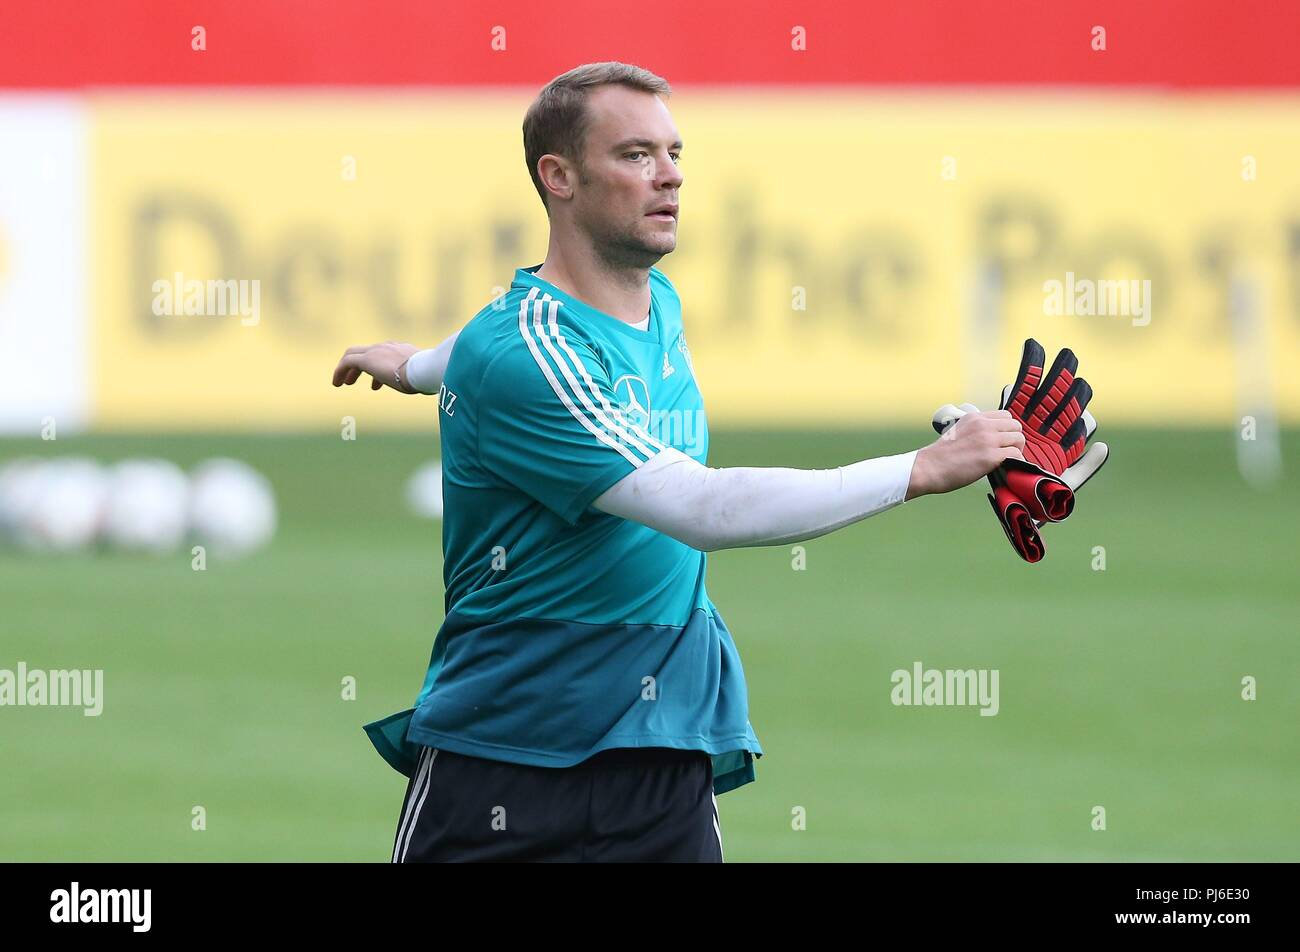 firo: 04.09.2018, Fuvuball, football, national team, training, Manuel Neuer, DFB, half figure, Germany | usage worldwide - Stock Image